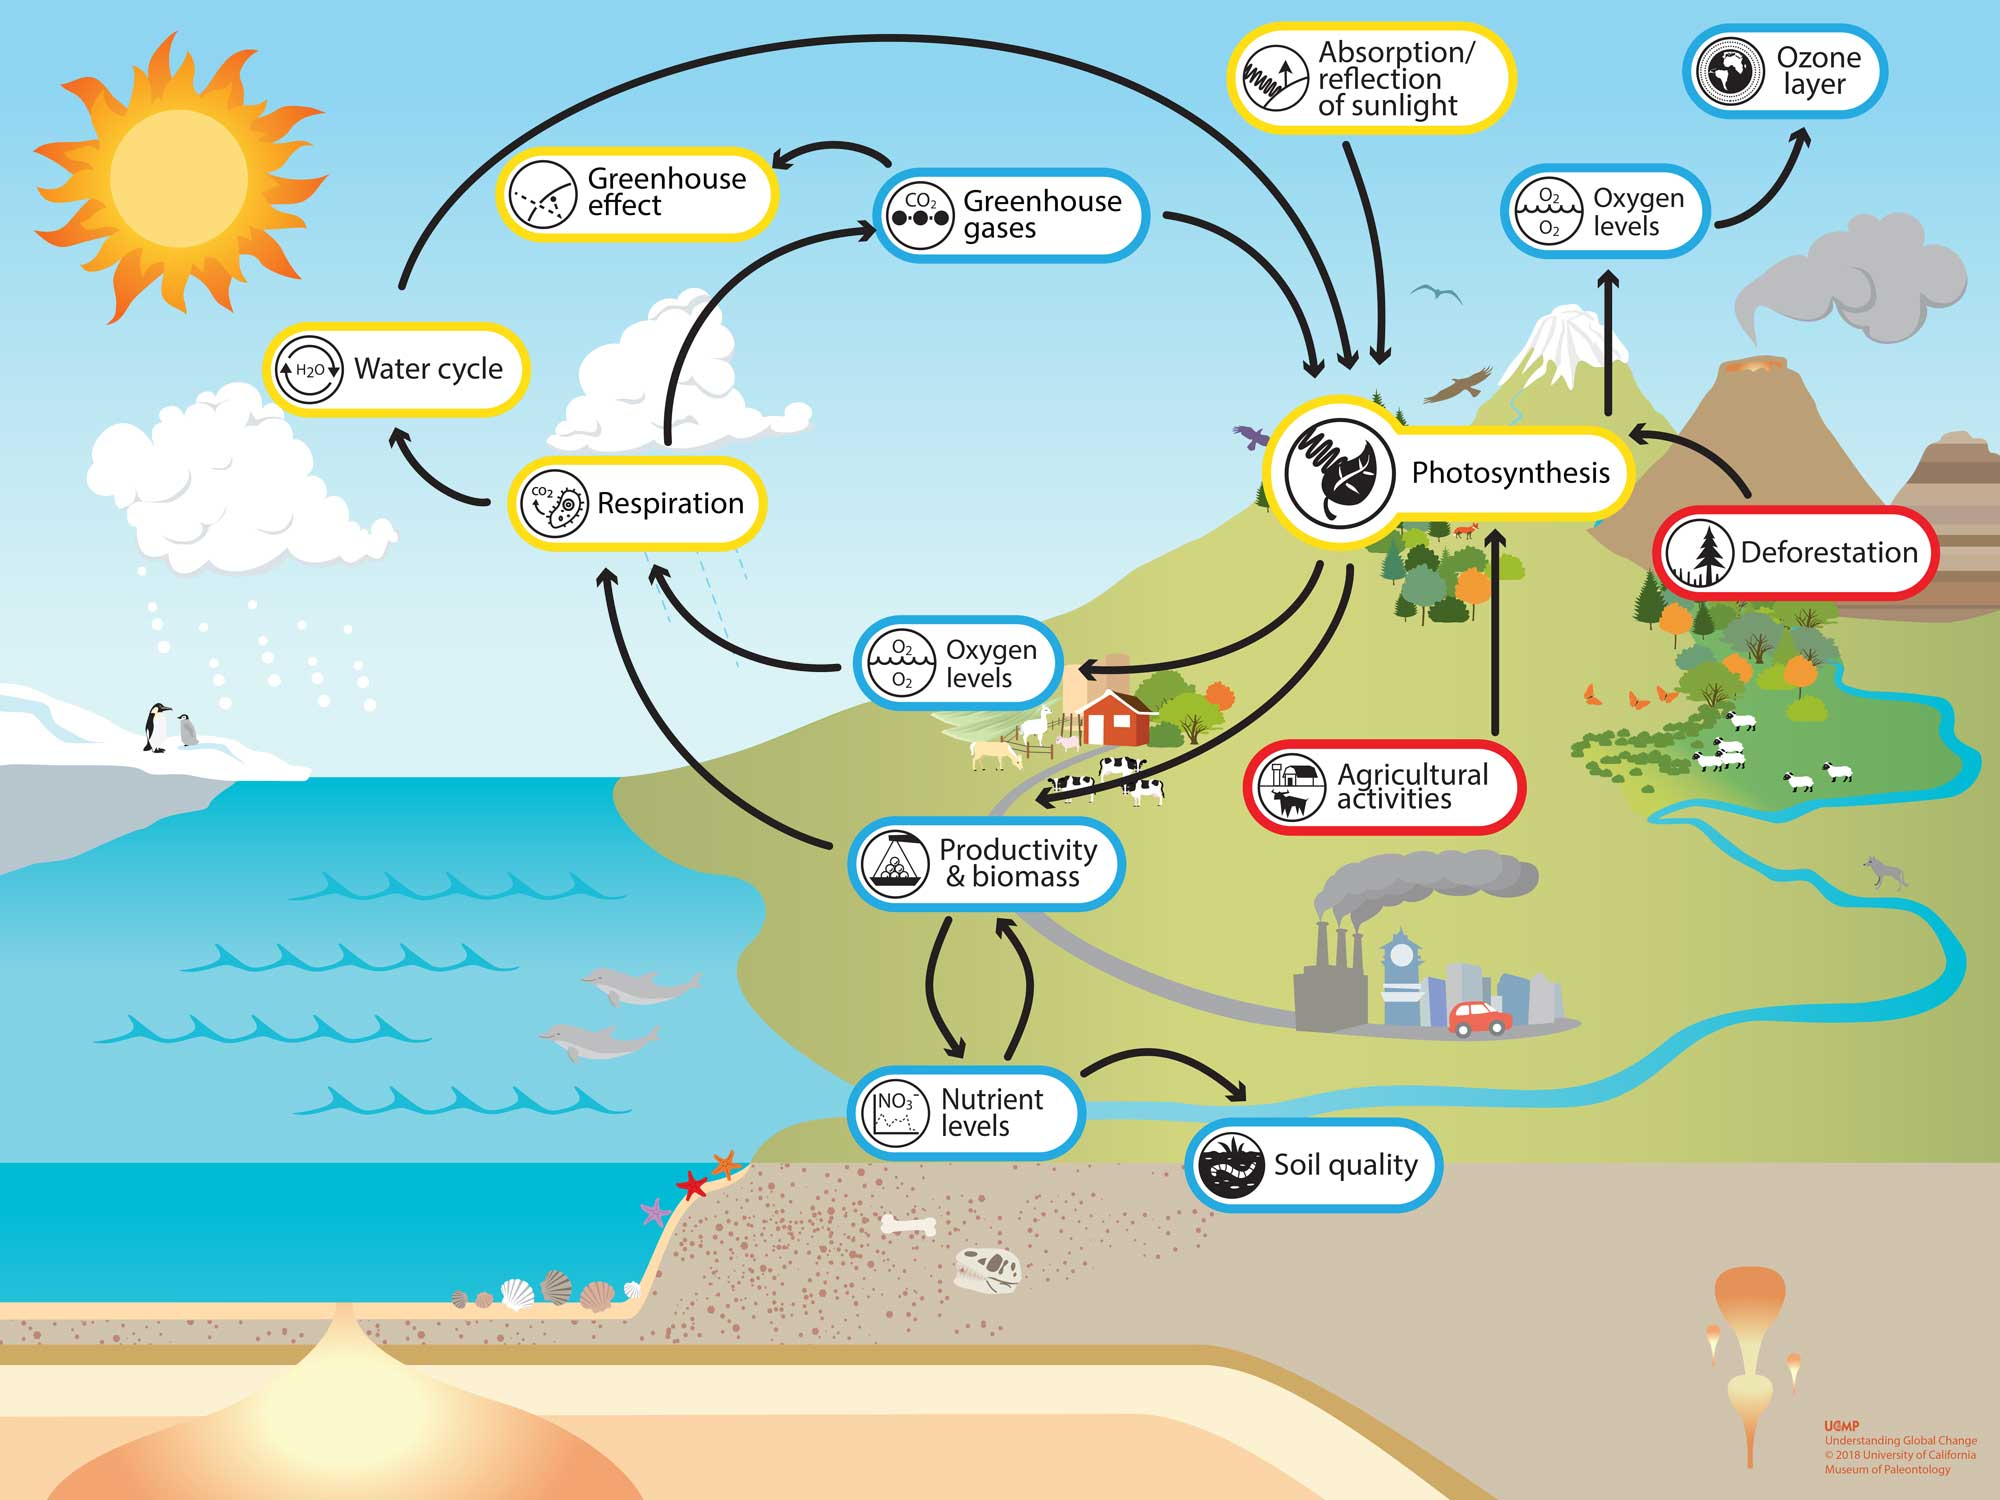 Photosynthesis system model